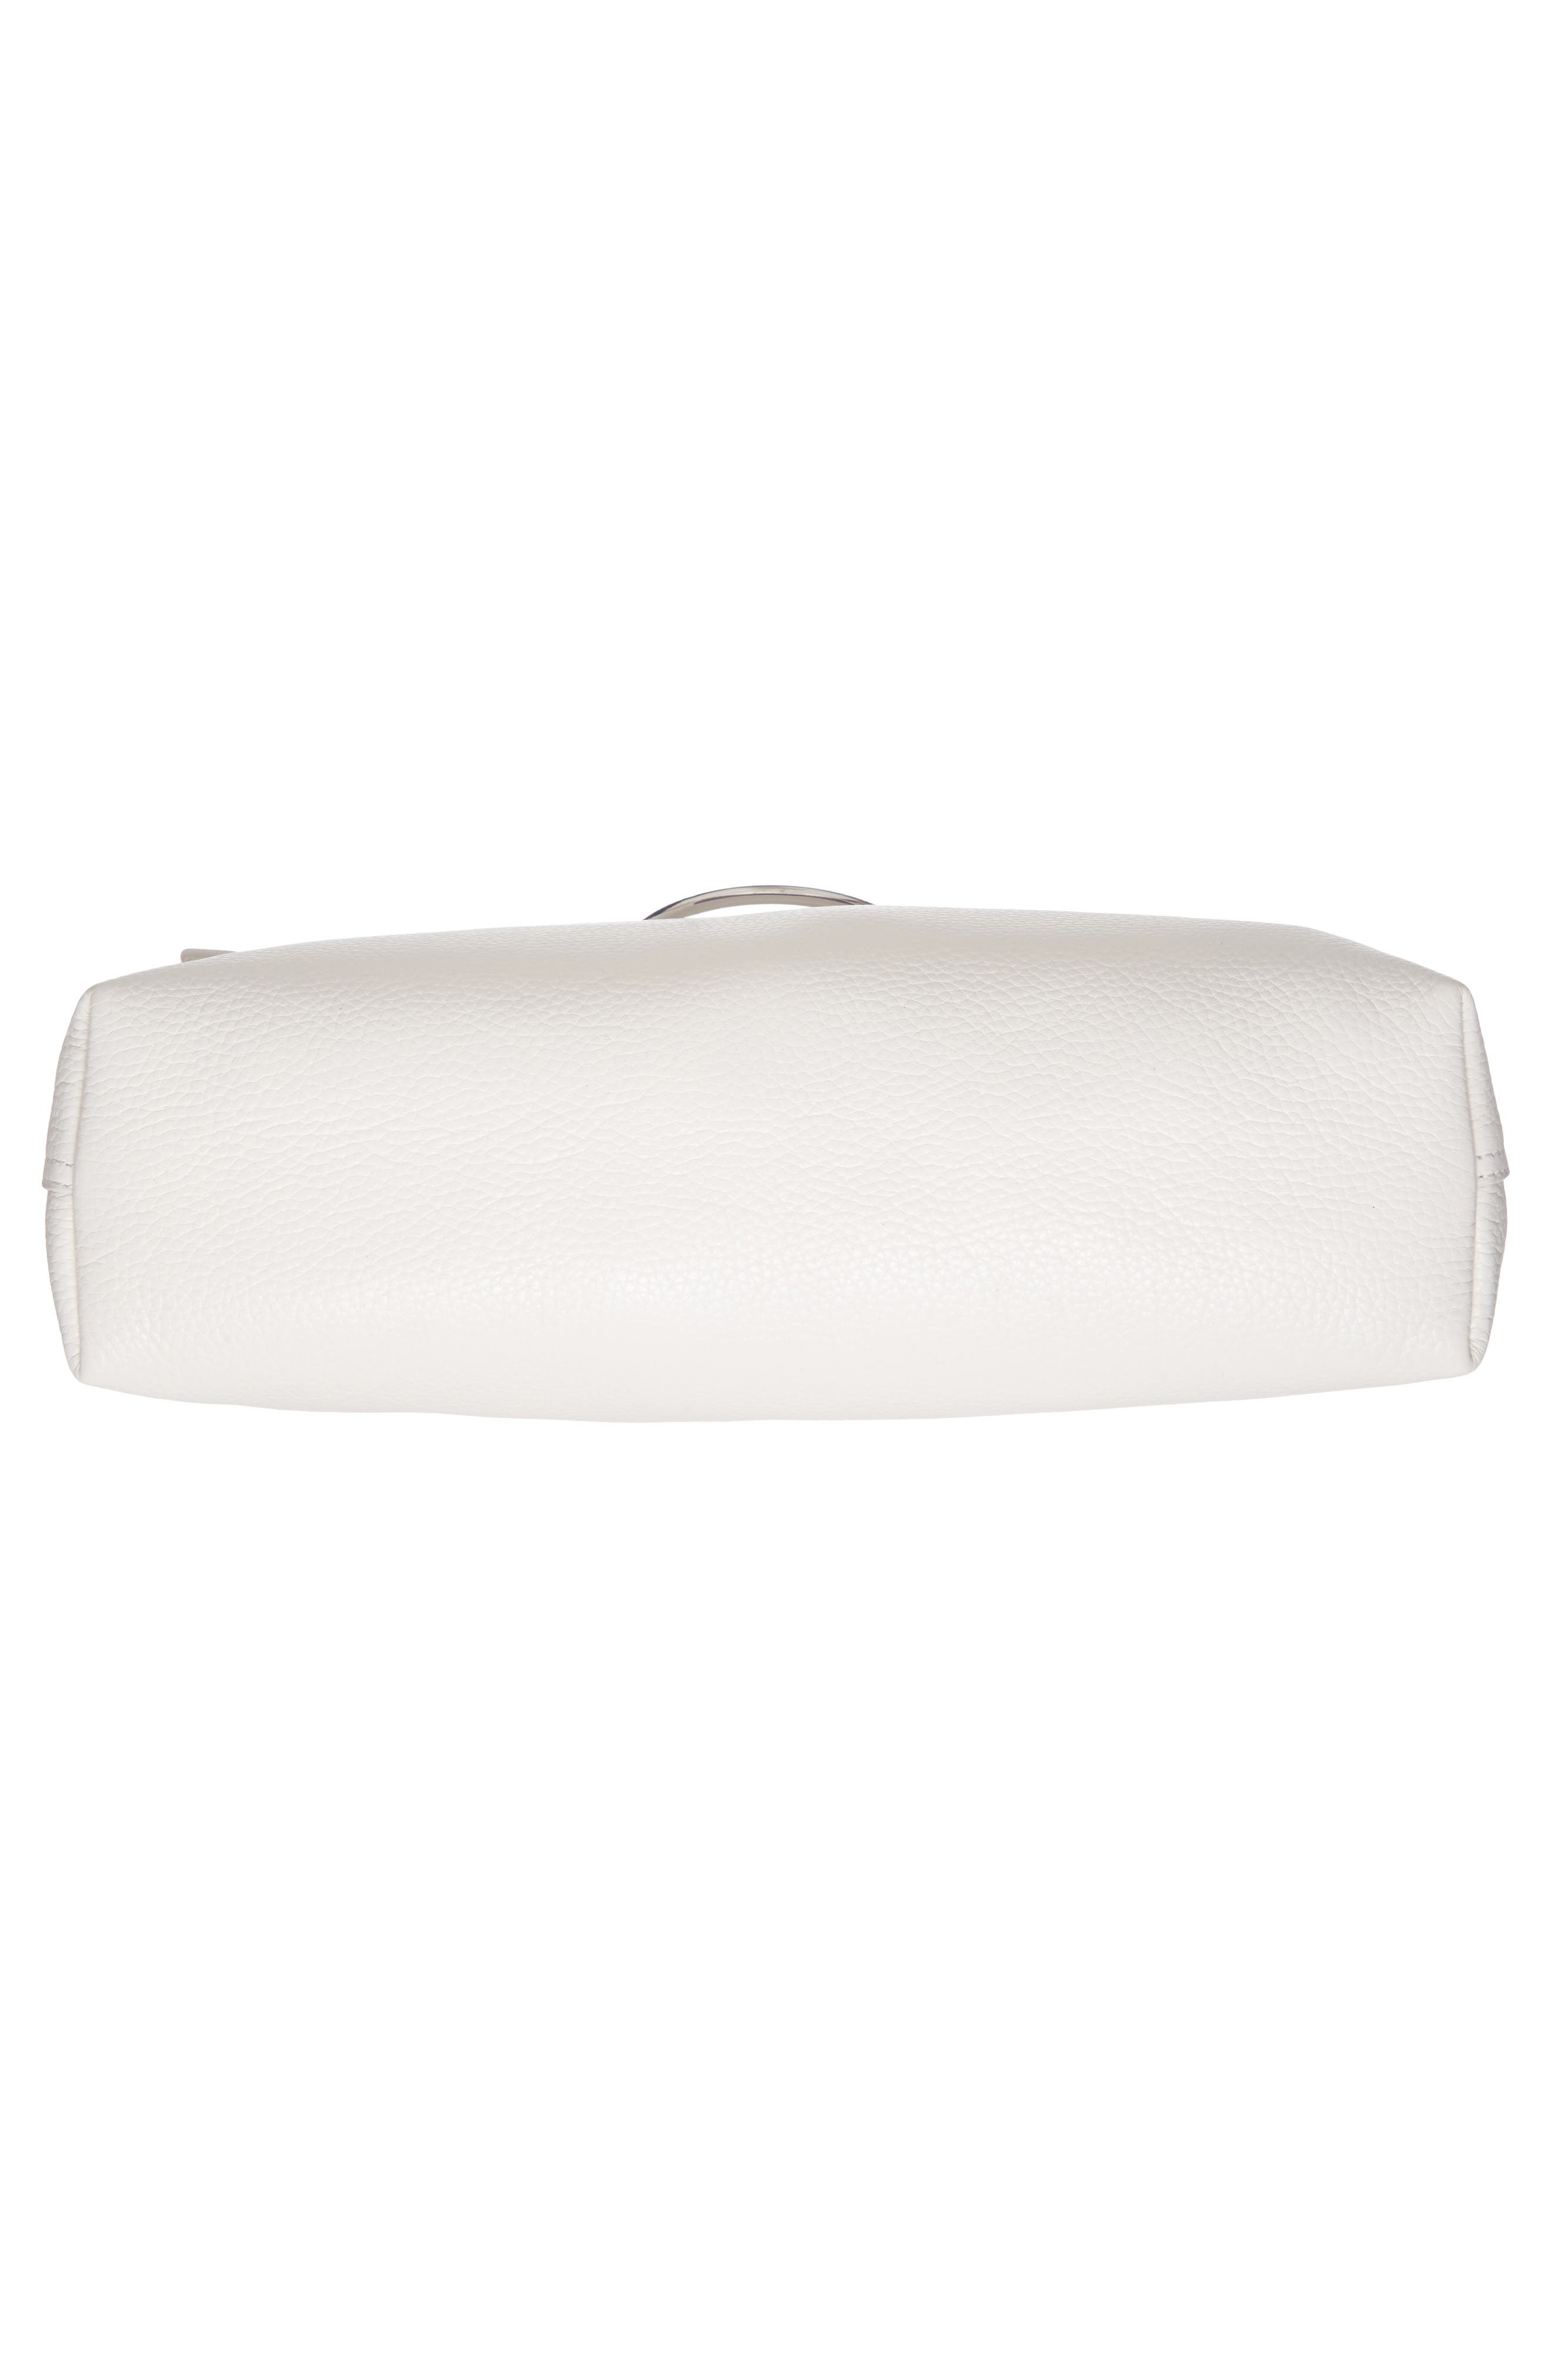 Large Pebbled Leather Ring Clutch,                             Alternate thumbnail 7, color,                             Off White